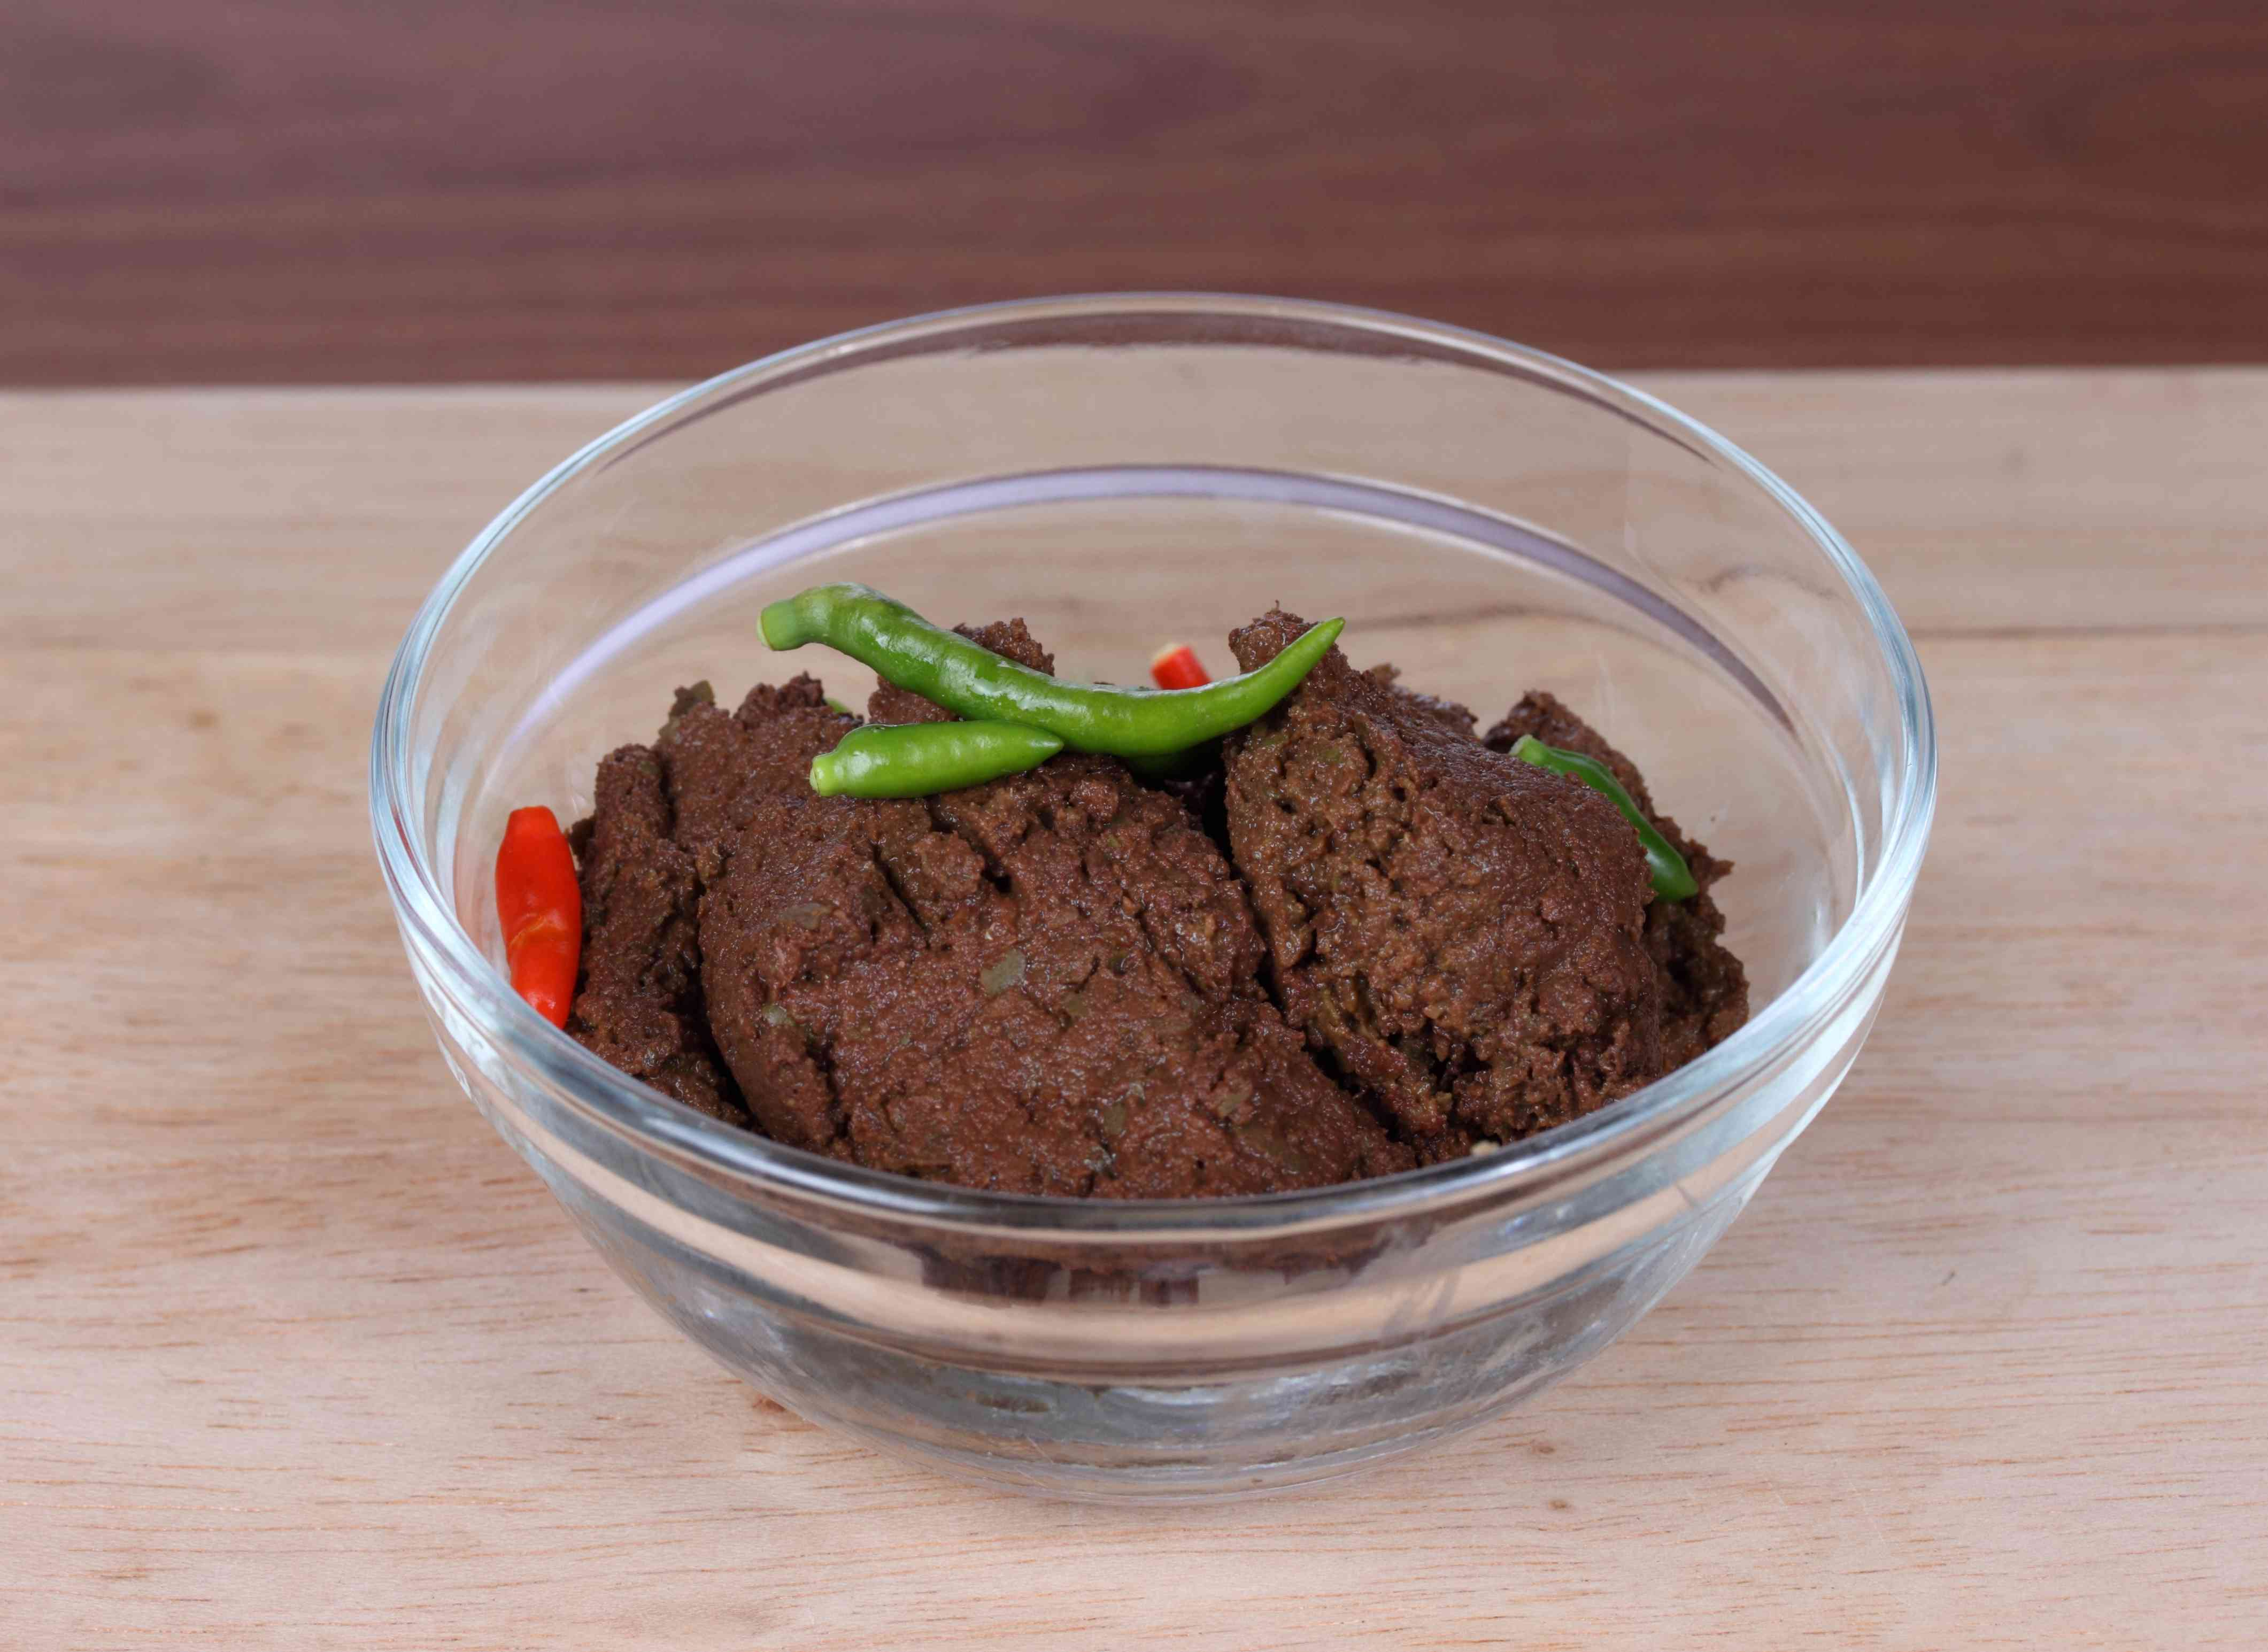 Tamarind paste in a glass bowl